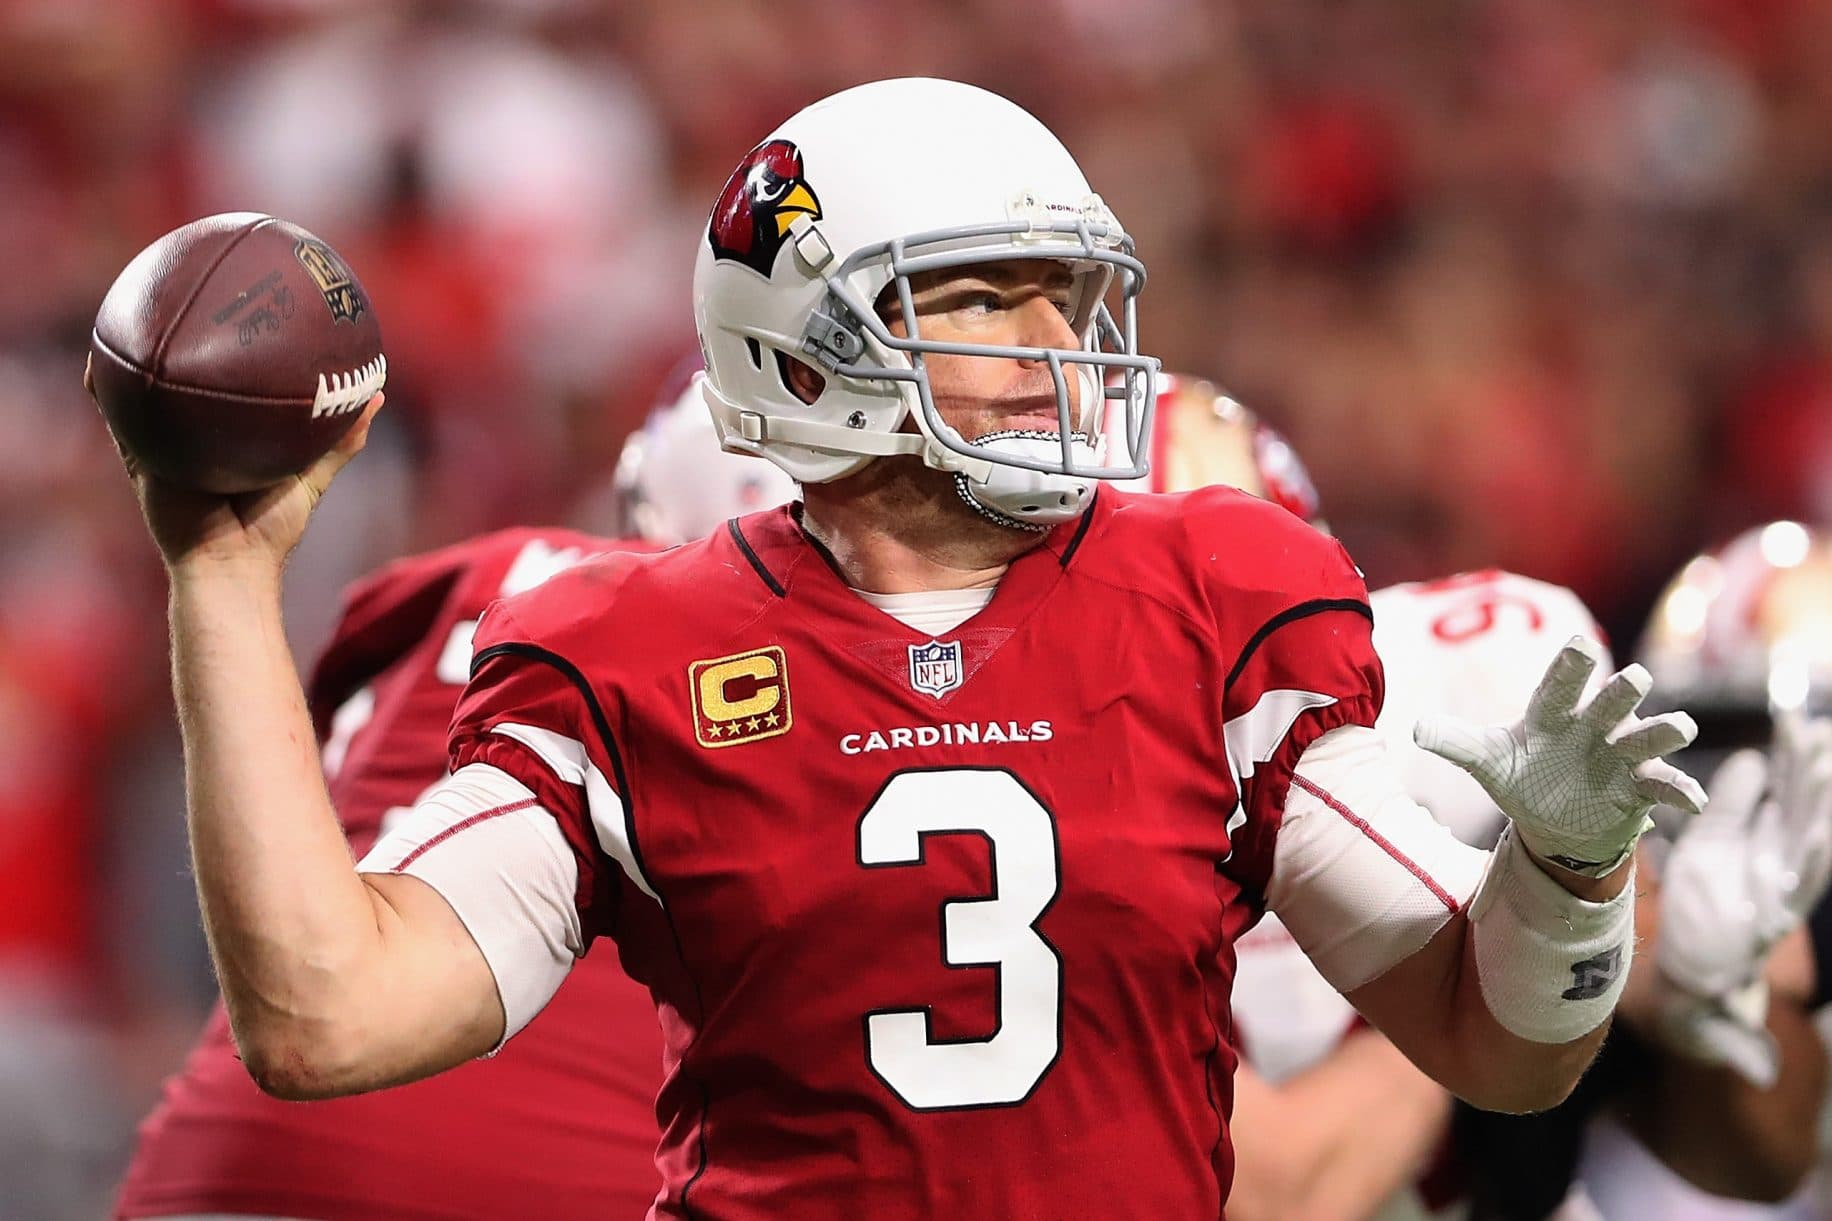 Daily Fantasy Football BYE Weeks Make For Tough Decisions: Sneaky with Carson Palmer 1